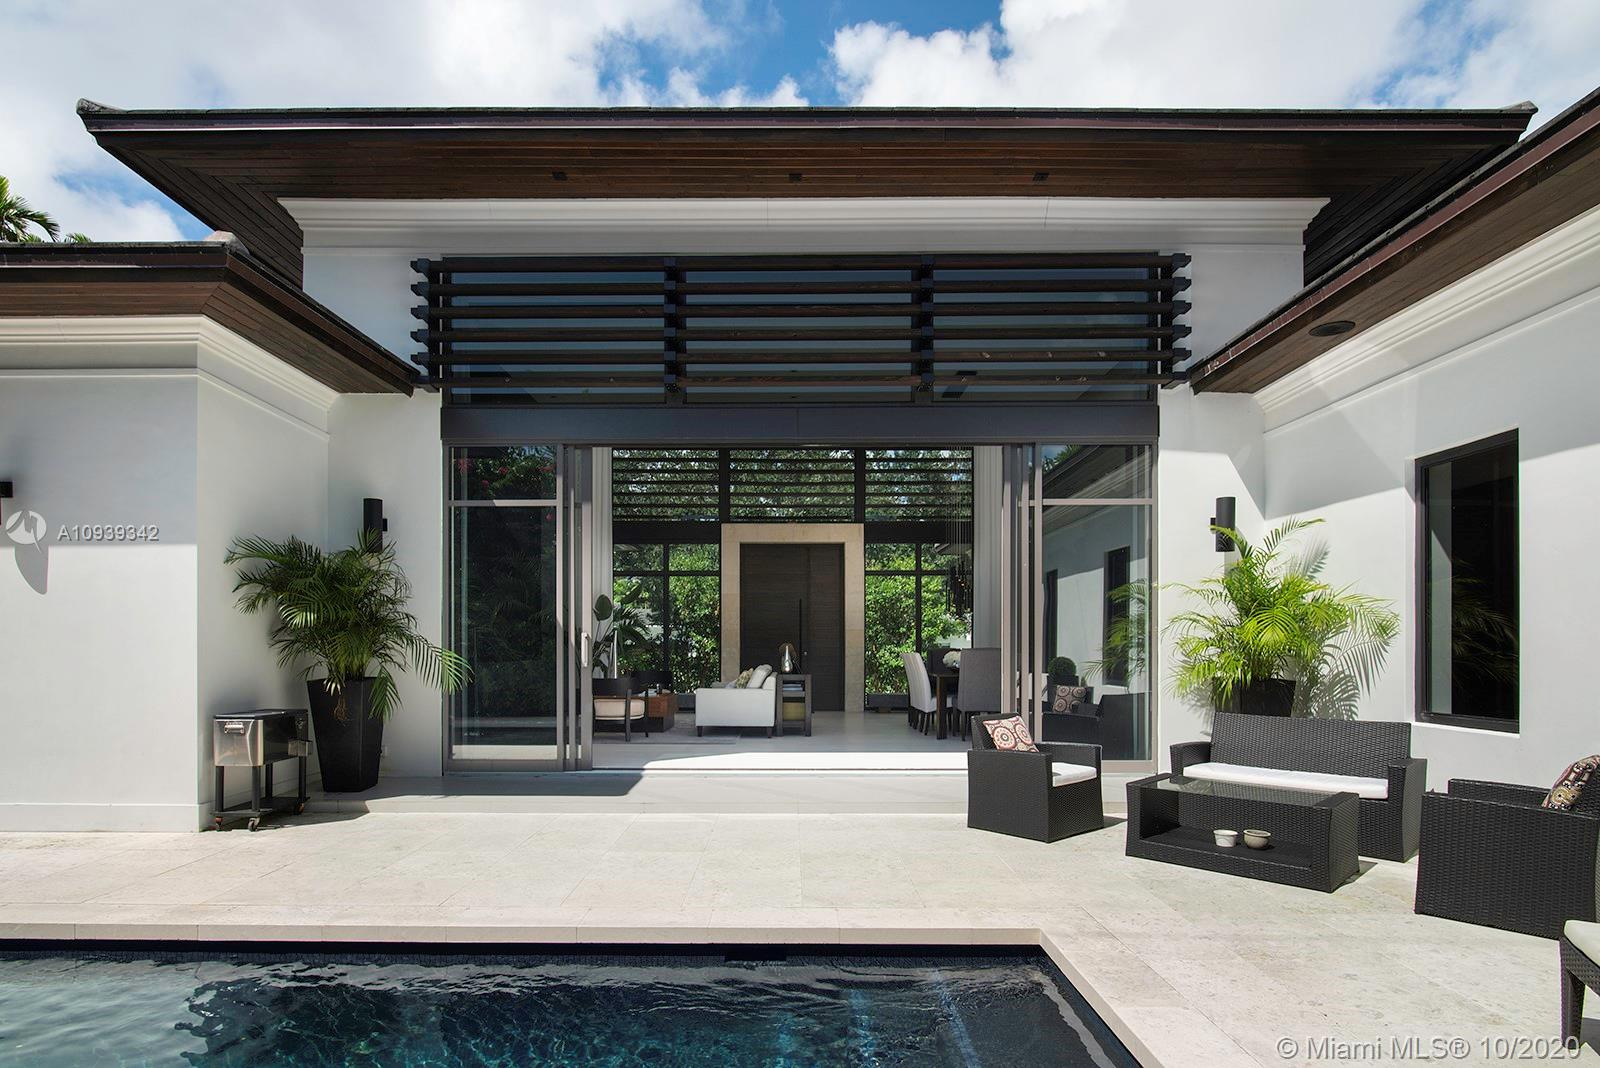 Tropical Modern new construction home in the most sought after section of Coral Gables. This trophy property was designed by award winning Dunagan Diverio Design Group. Truly a unique home this custom build features oversized windows, high ceilings, & clean lines with touches of warm woods & natural stone textures. The inviting open floor plan & design of the home emphasizes indoor/ outdoor living for entertaining all year long. Stunning Mia Cucina Italian eat-in Kitchen features top of the line Sub Zero & Wolf appliances w/ bar & wine display. Luxurious Master Bedroom is lined w/ a wall of glass overlooking the pool & features large walk in closet & spa-like Master Bath. Large yard w/ pool & private outdoor shower. Complete smart home. Garage w/ double height ceiling built for a car lift.